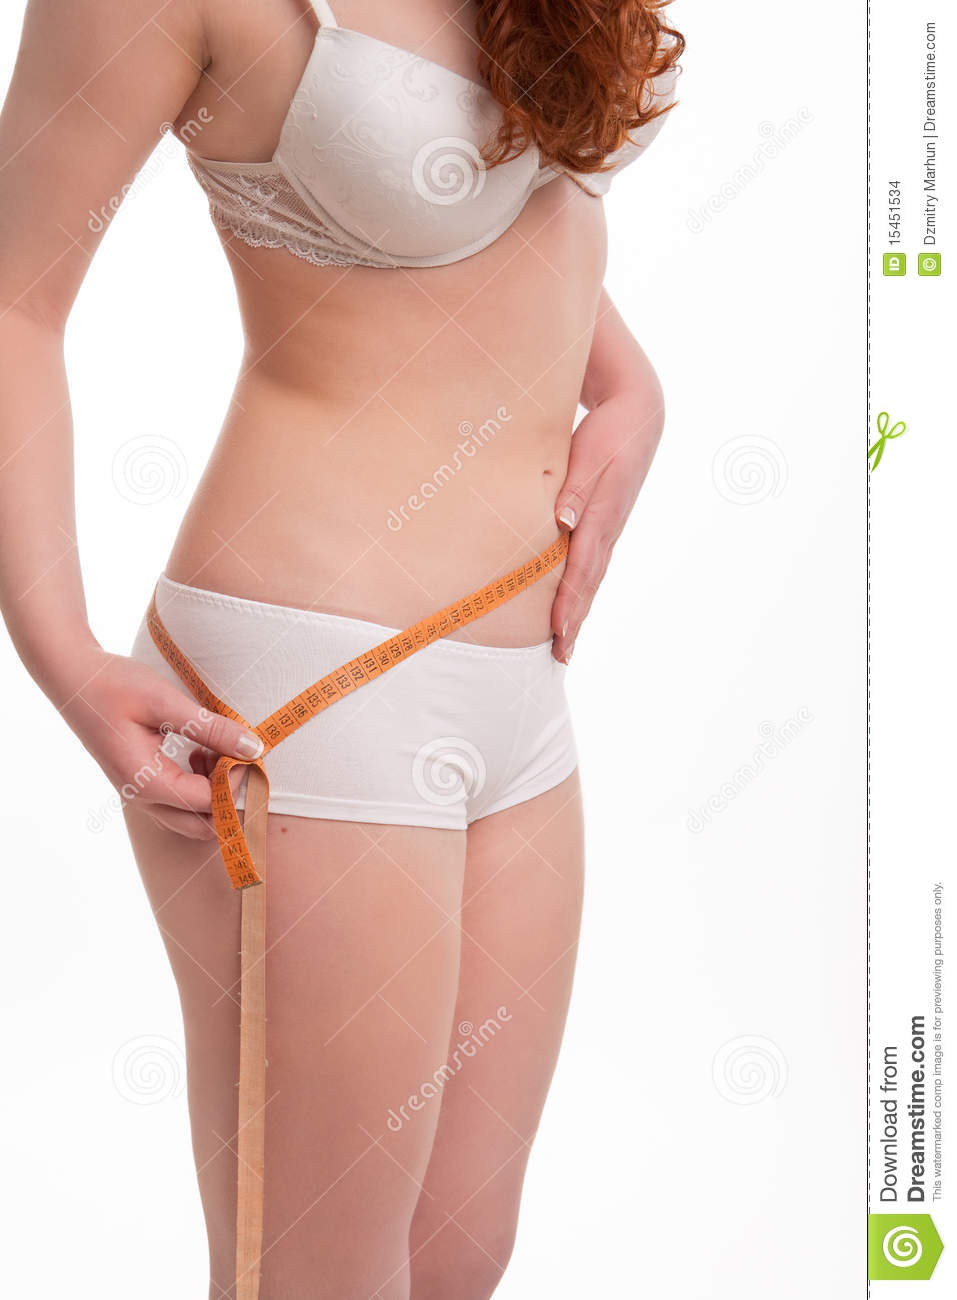 Body Measurement Stock Images   Image  15451534